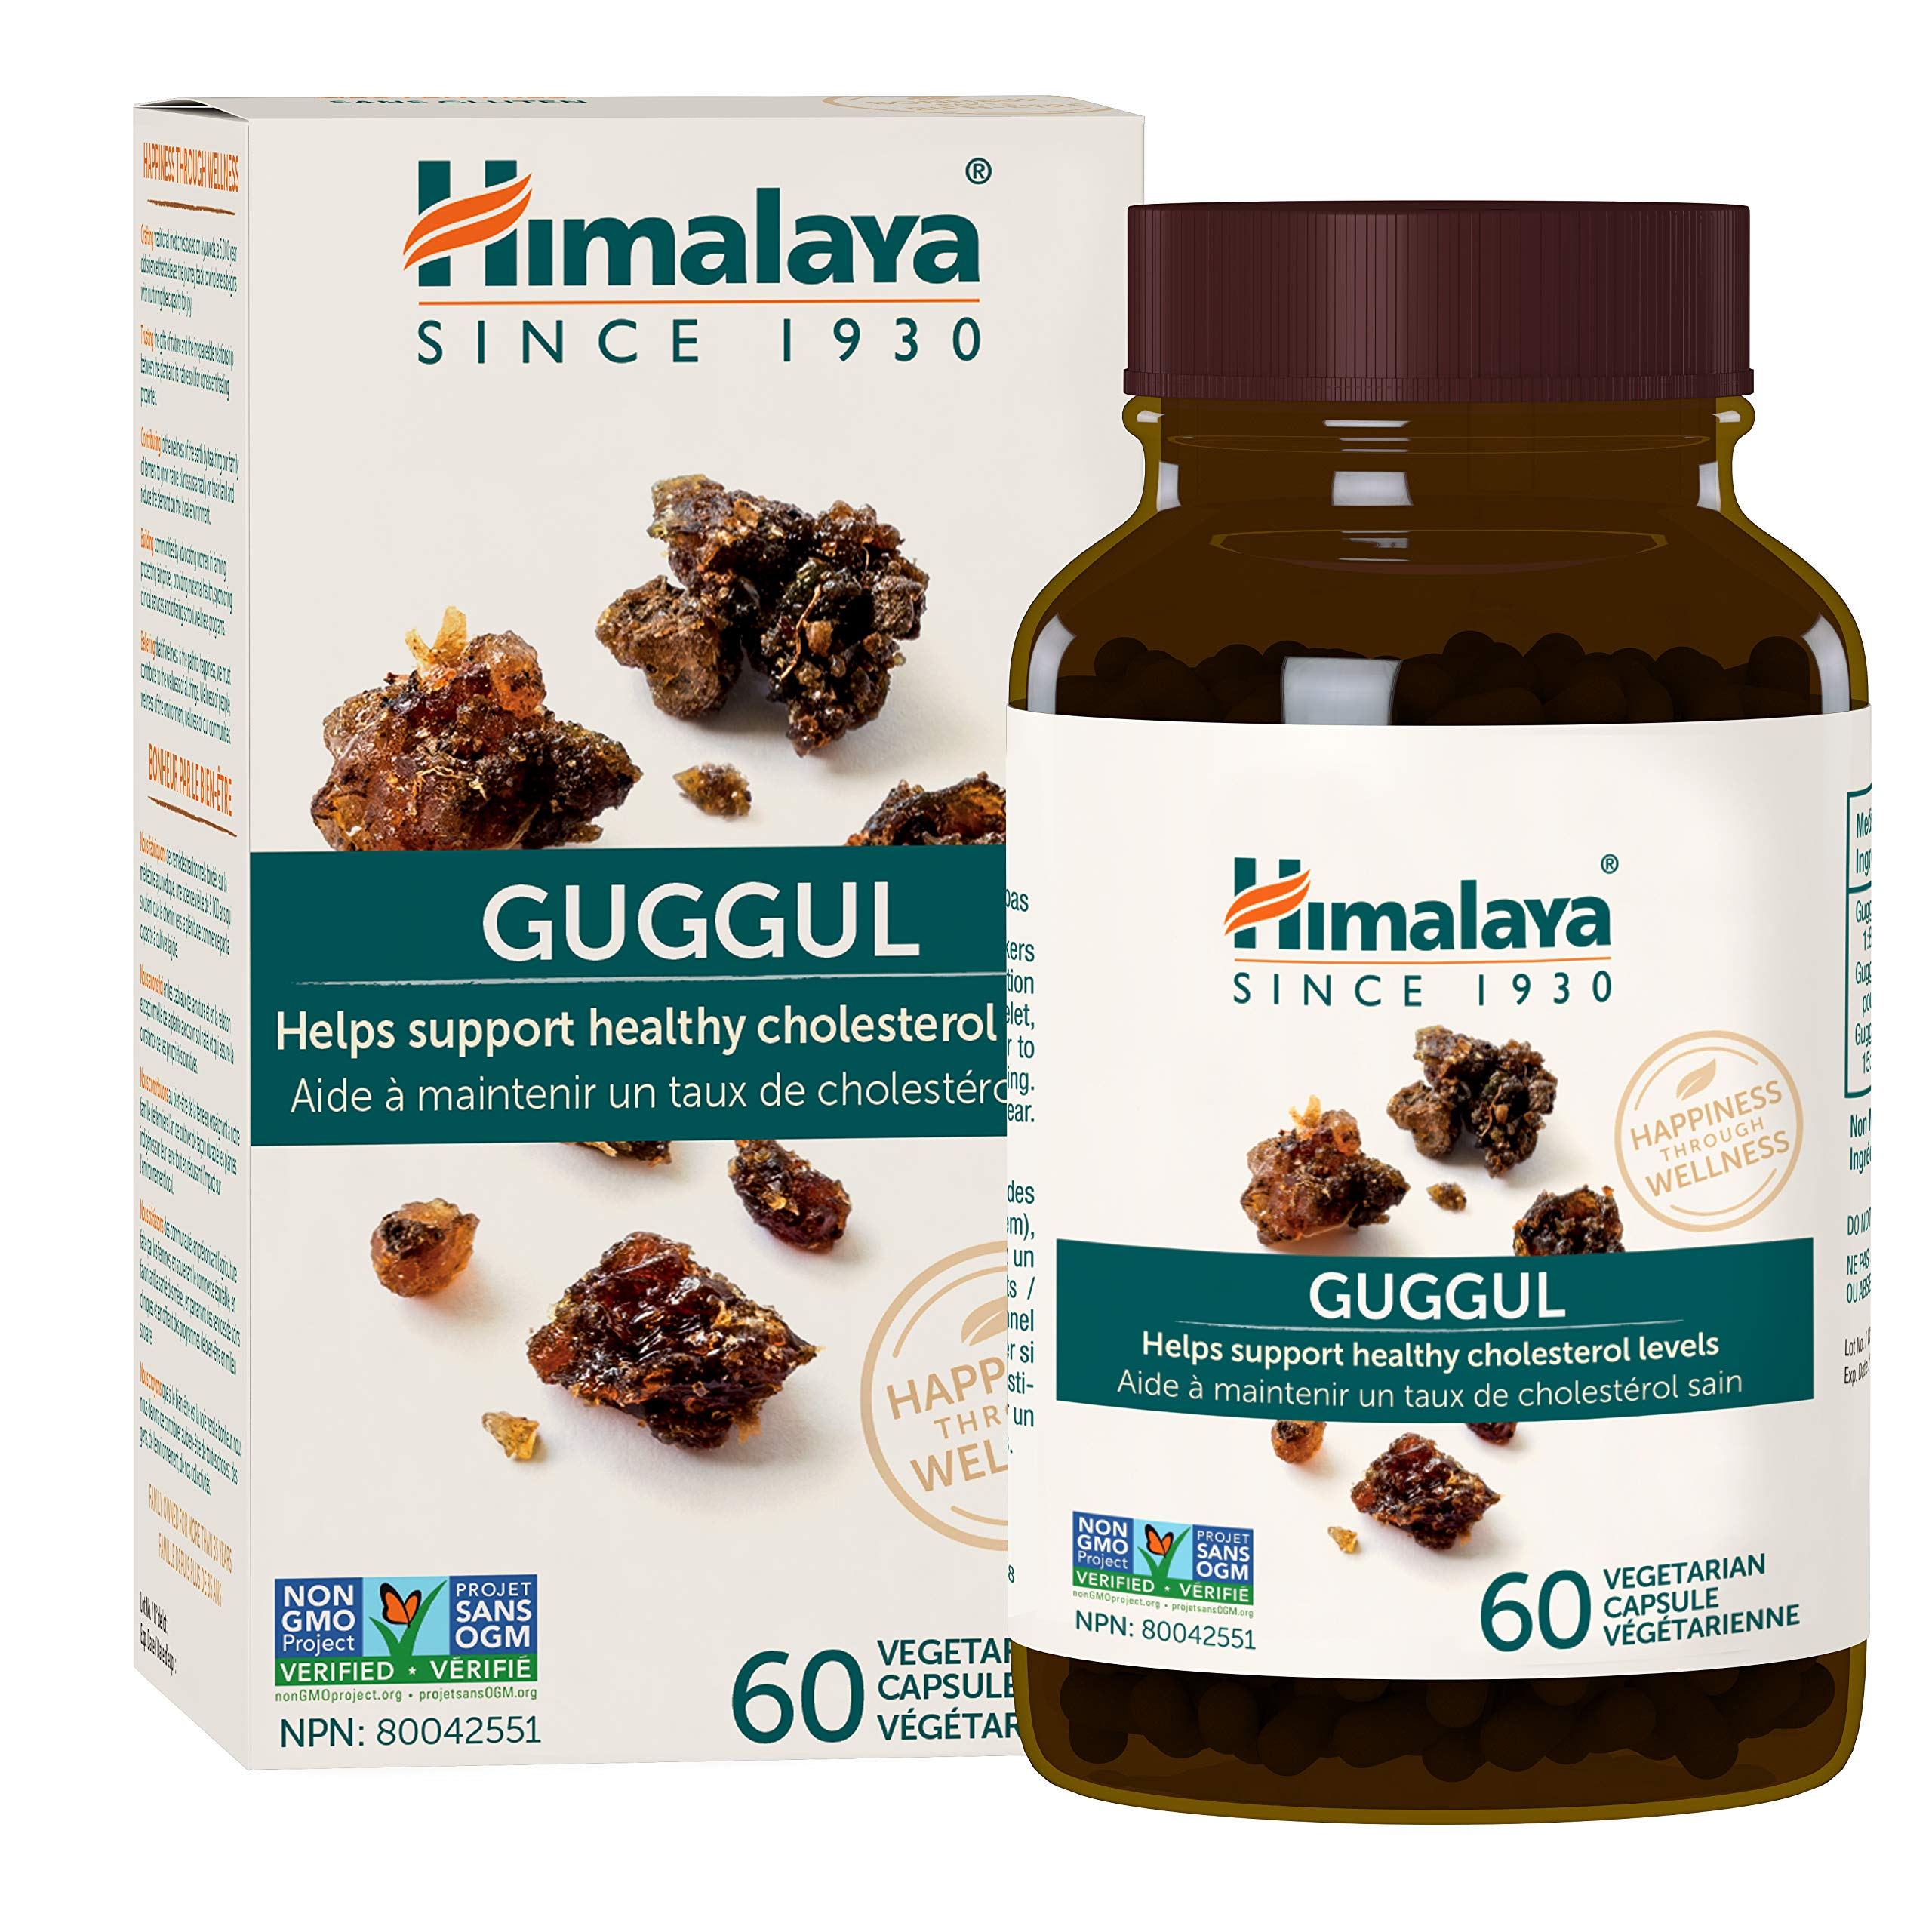 Himalaya Guggul, Cholesterol Supplement for Healthy LDL, HDL and Triglyceride Levels, 750 mg, 60 Capsules, 15 Day Supply